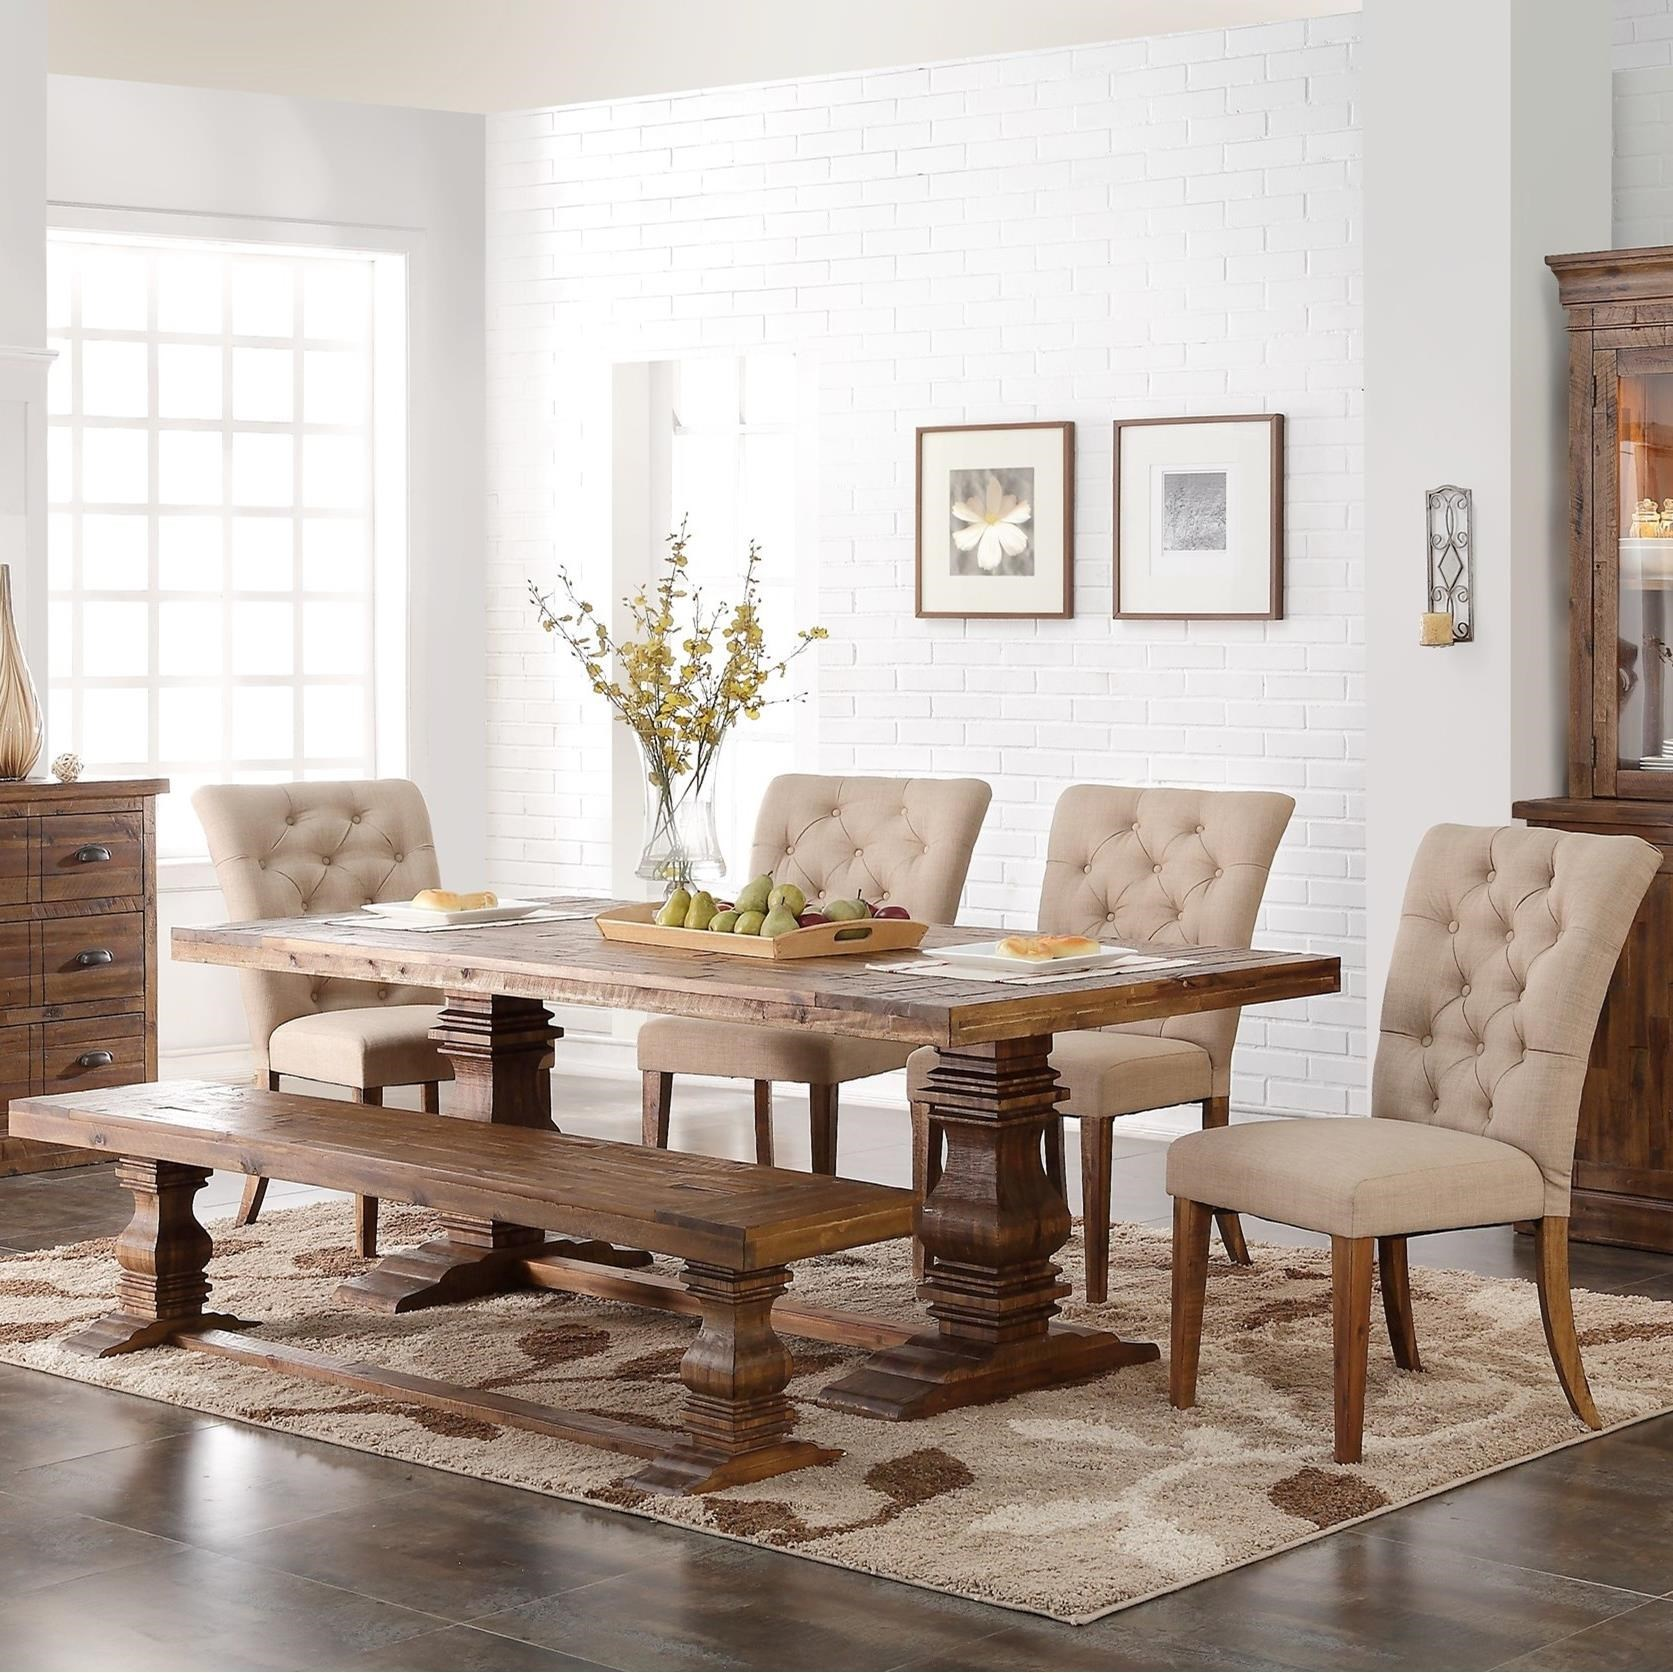 10 Seat Dining Table Set Normandy 6 Piece Double Pedestal Table And Upholstered Chair Set With Bench By New Classic At Dunk Bright Furniture